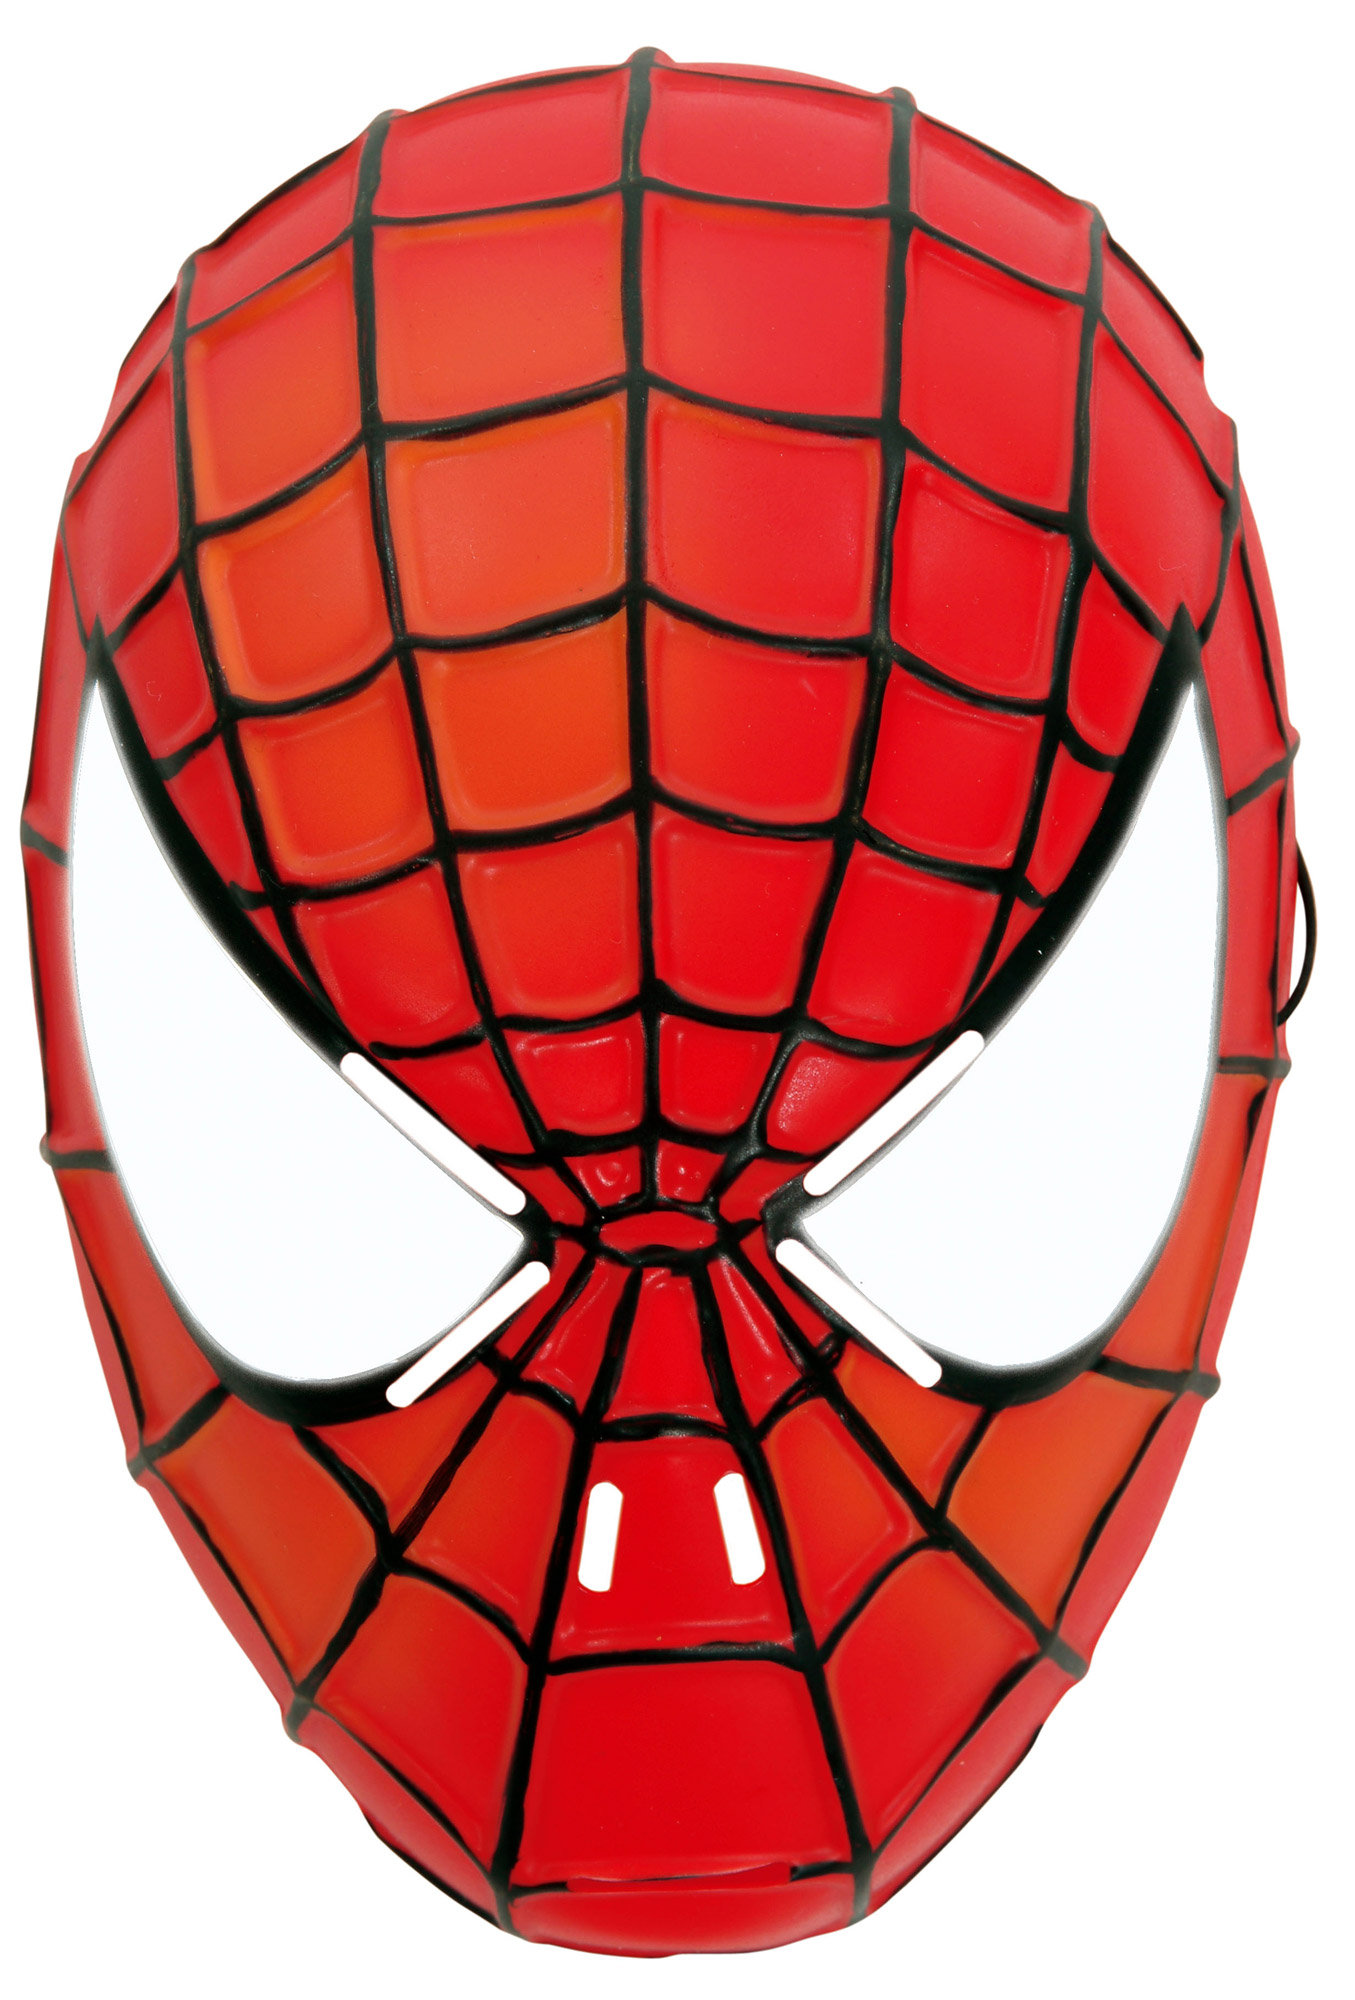 Mask clipart spiderman mask Spider Coloring Silhouette Masque